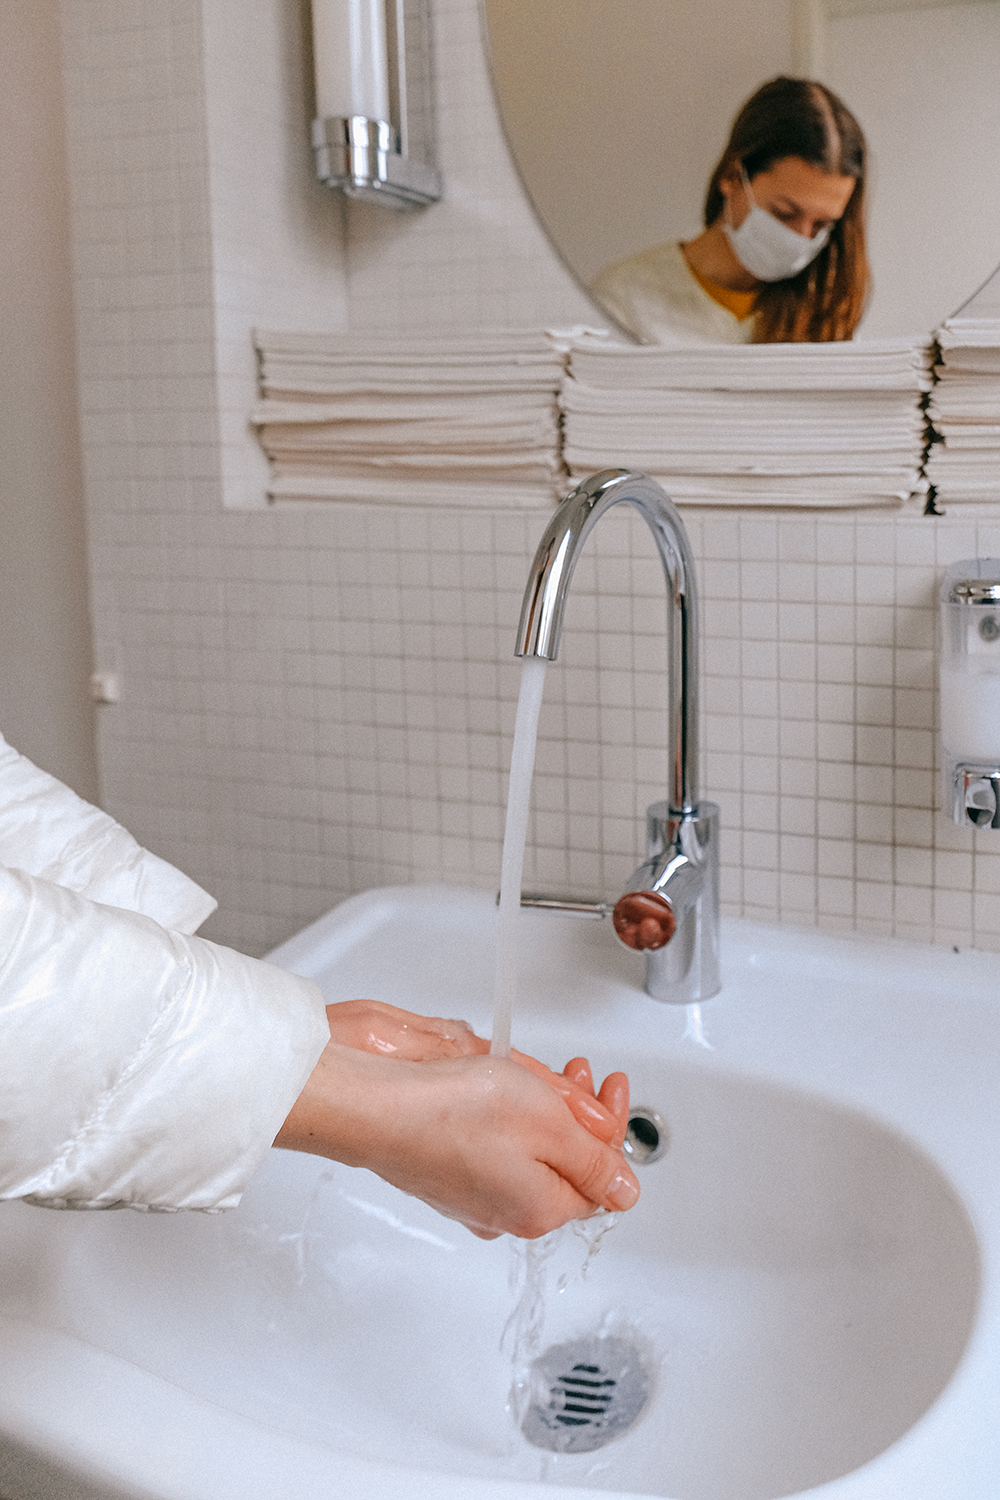 Canva - Woman With a Face Mask Washing her Hands